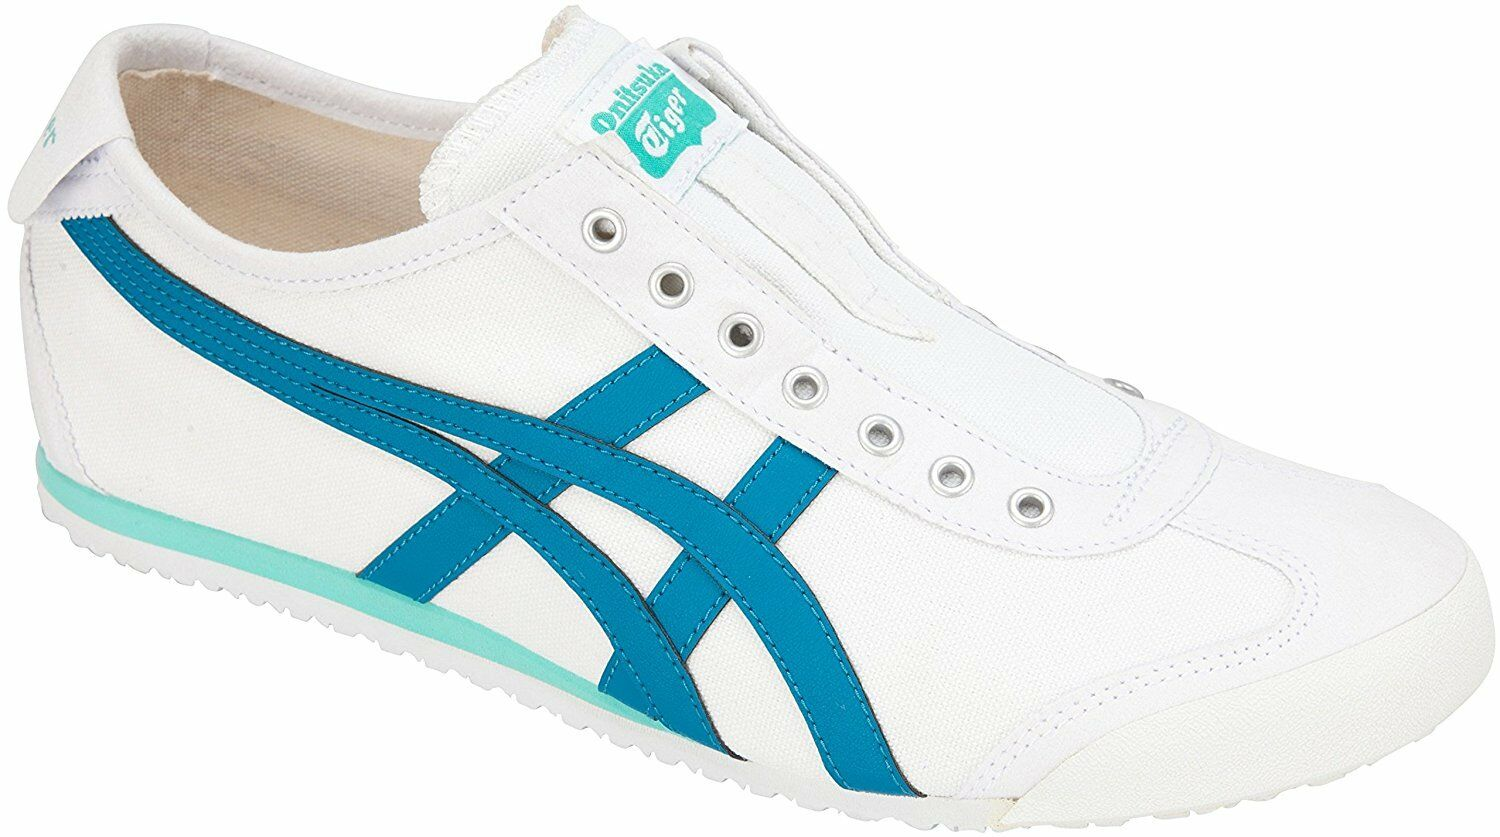 Asics Onitsuka Tiger shoes shoes shoes MEXICO 66 SLIP-ON TH3K0N White / turquoise tile japan 0c2cc5